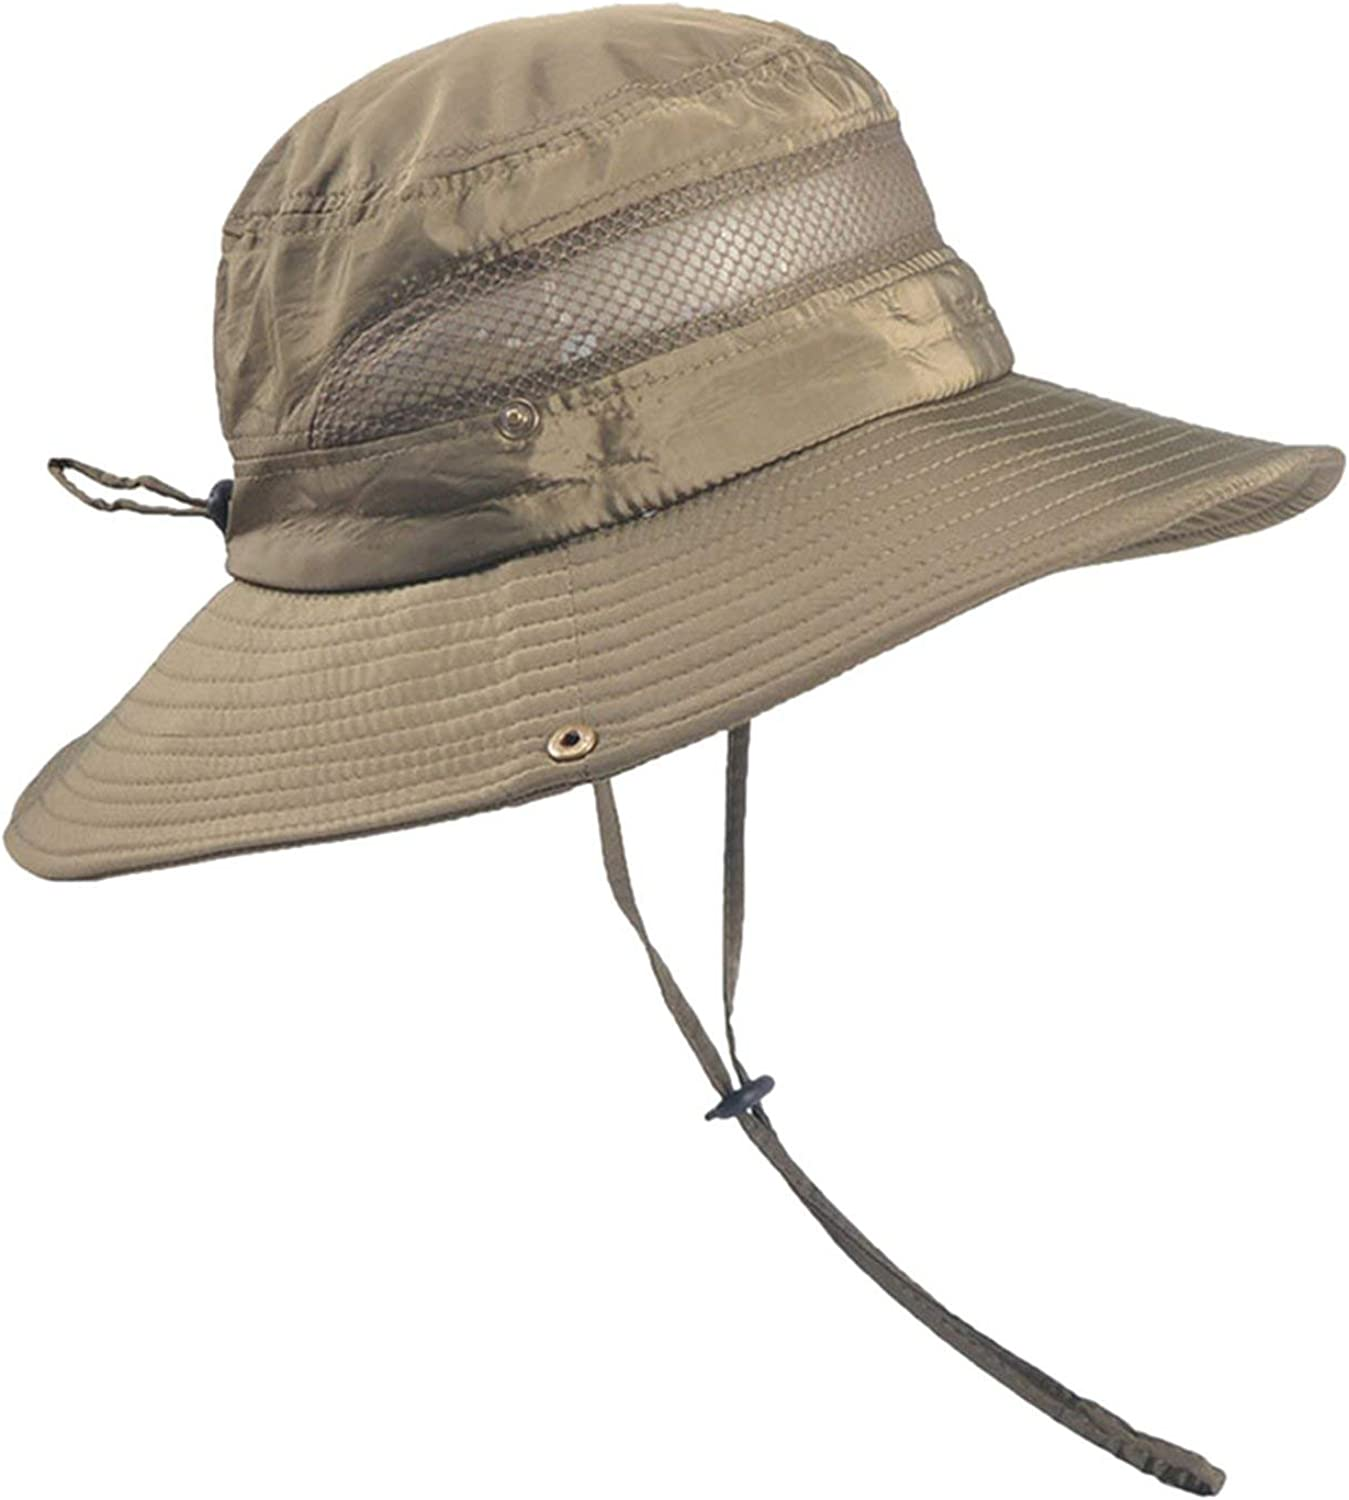 Caps for Unisex Summer Outdoor Sun Hat Protection Bucket Mesh Boonie Hat Solid Fishing Cap,G